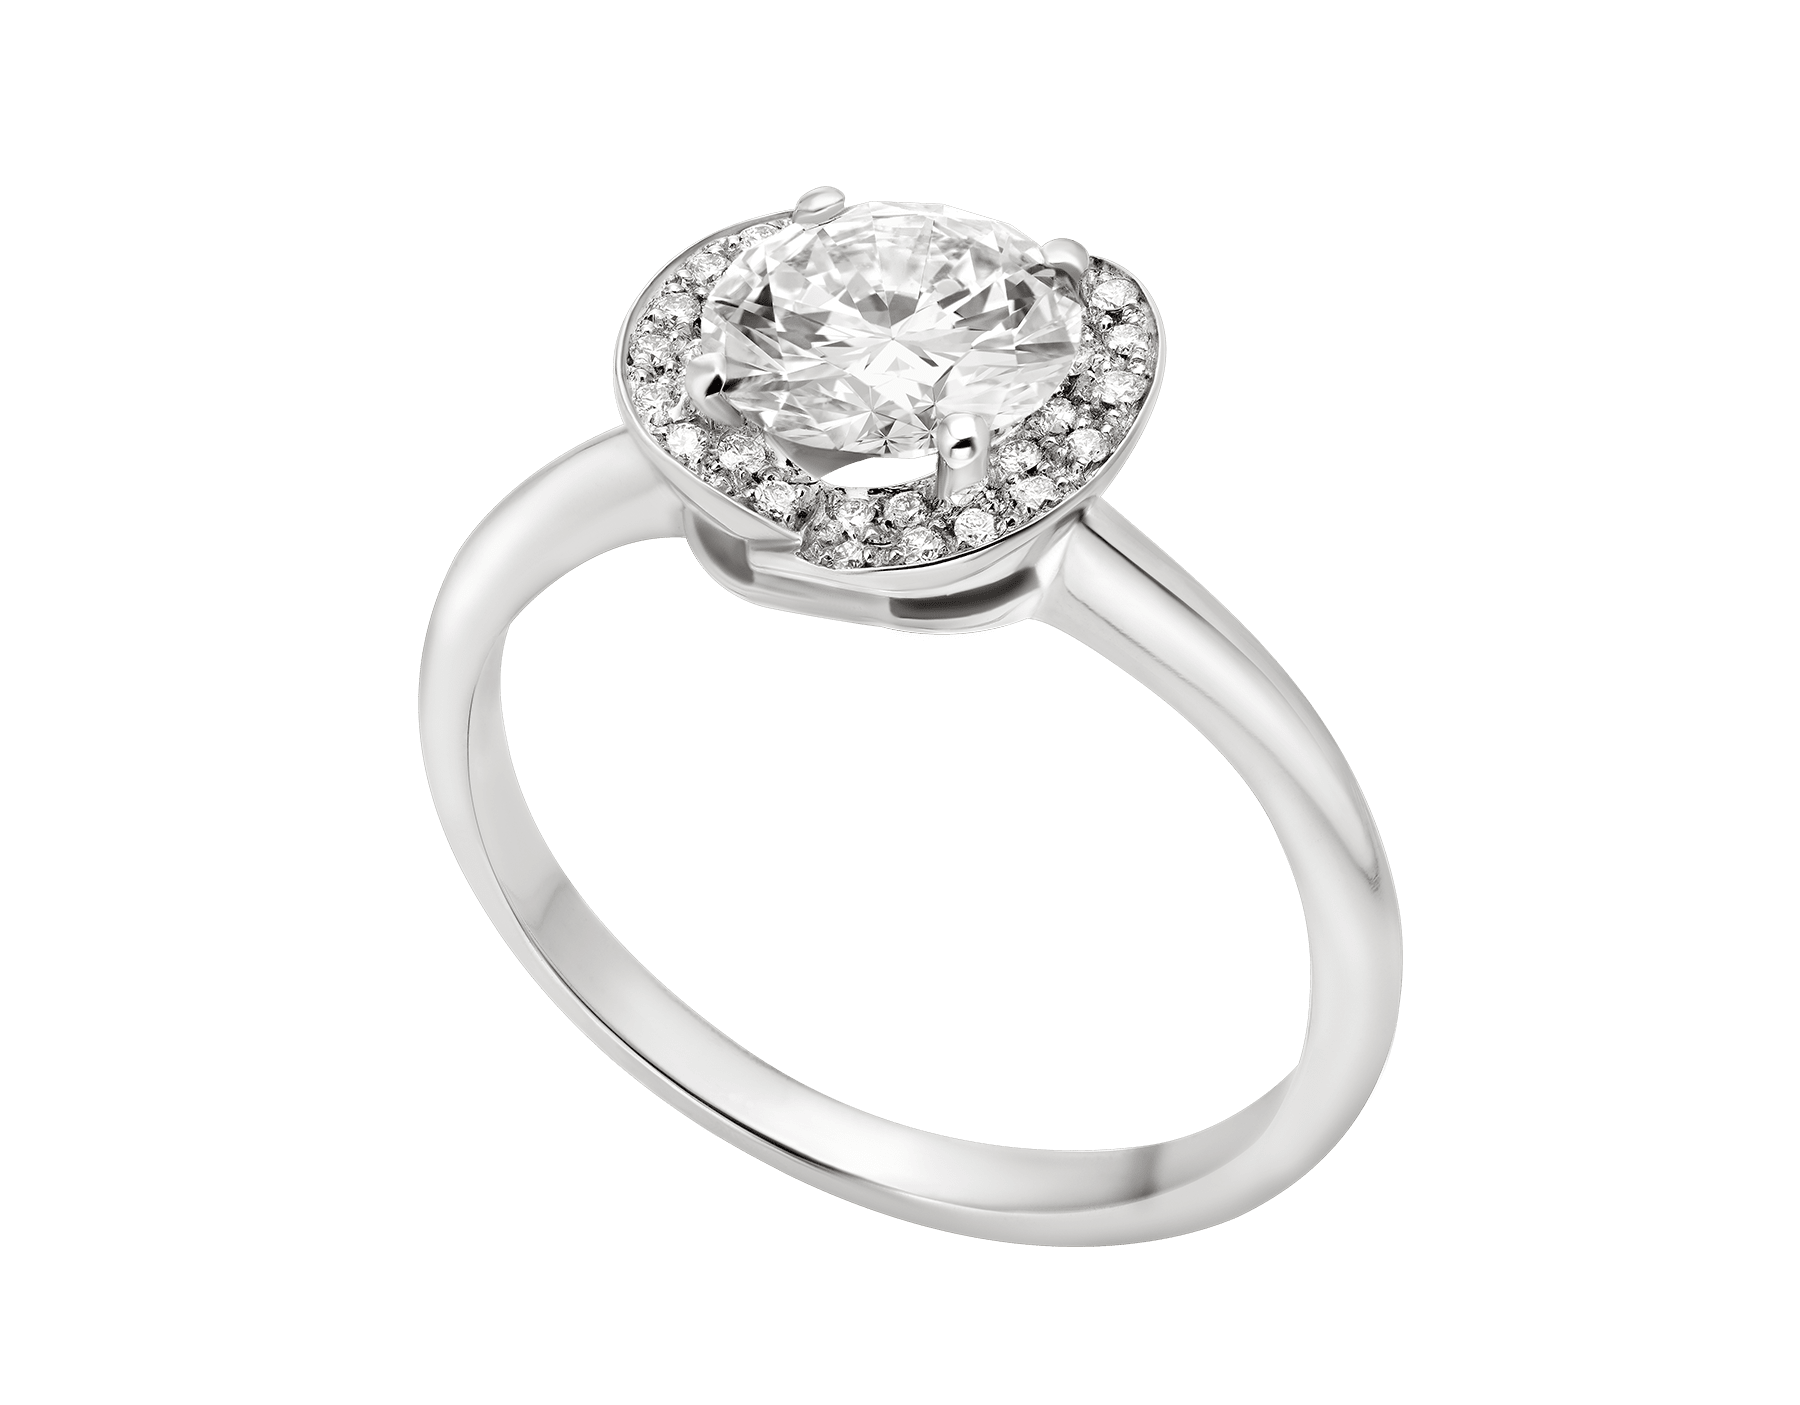 Incontro d'Amore platinum ring set with a round brilliant-cut diamond and a halo of pavé diamonds. 355436 image 5